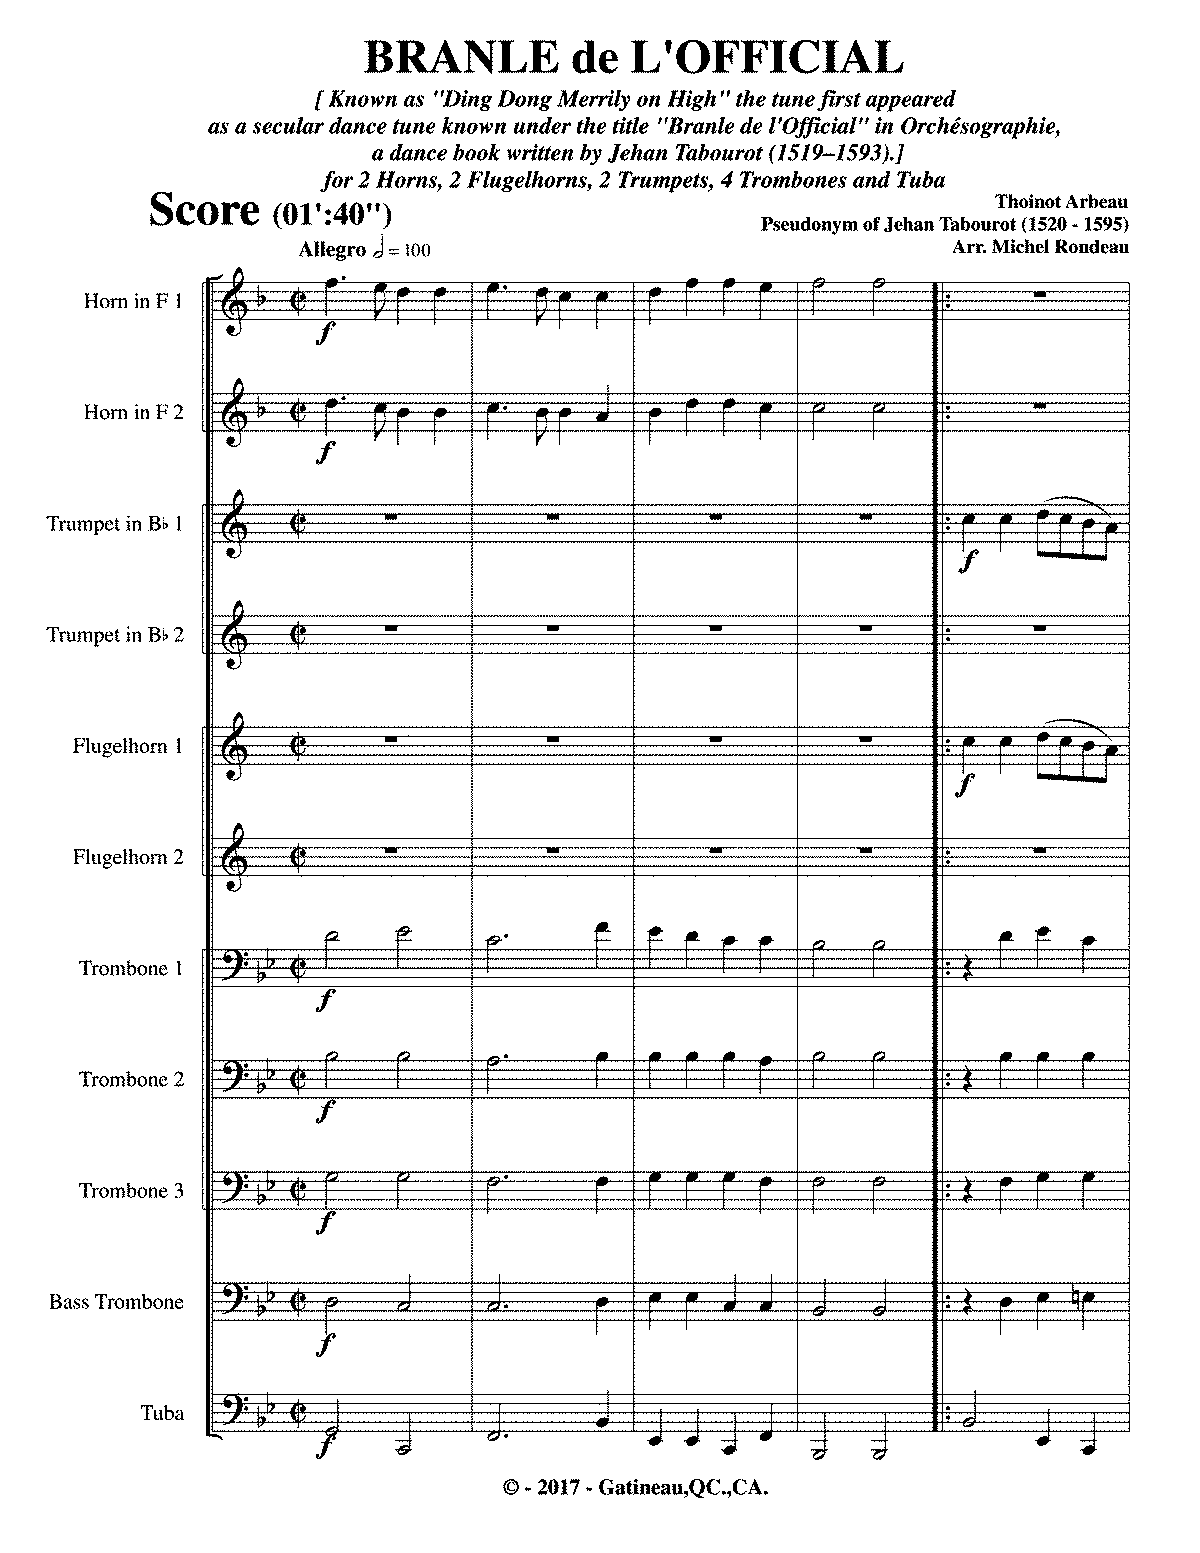 Orchésographie (Arbeau, Thoinot) - IMSLP: Free Sheet Music ...